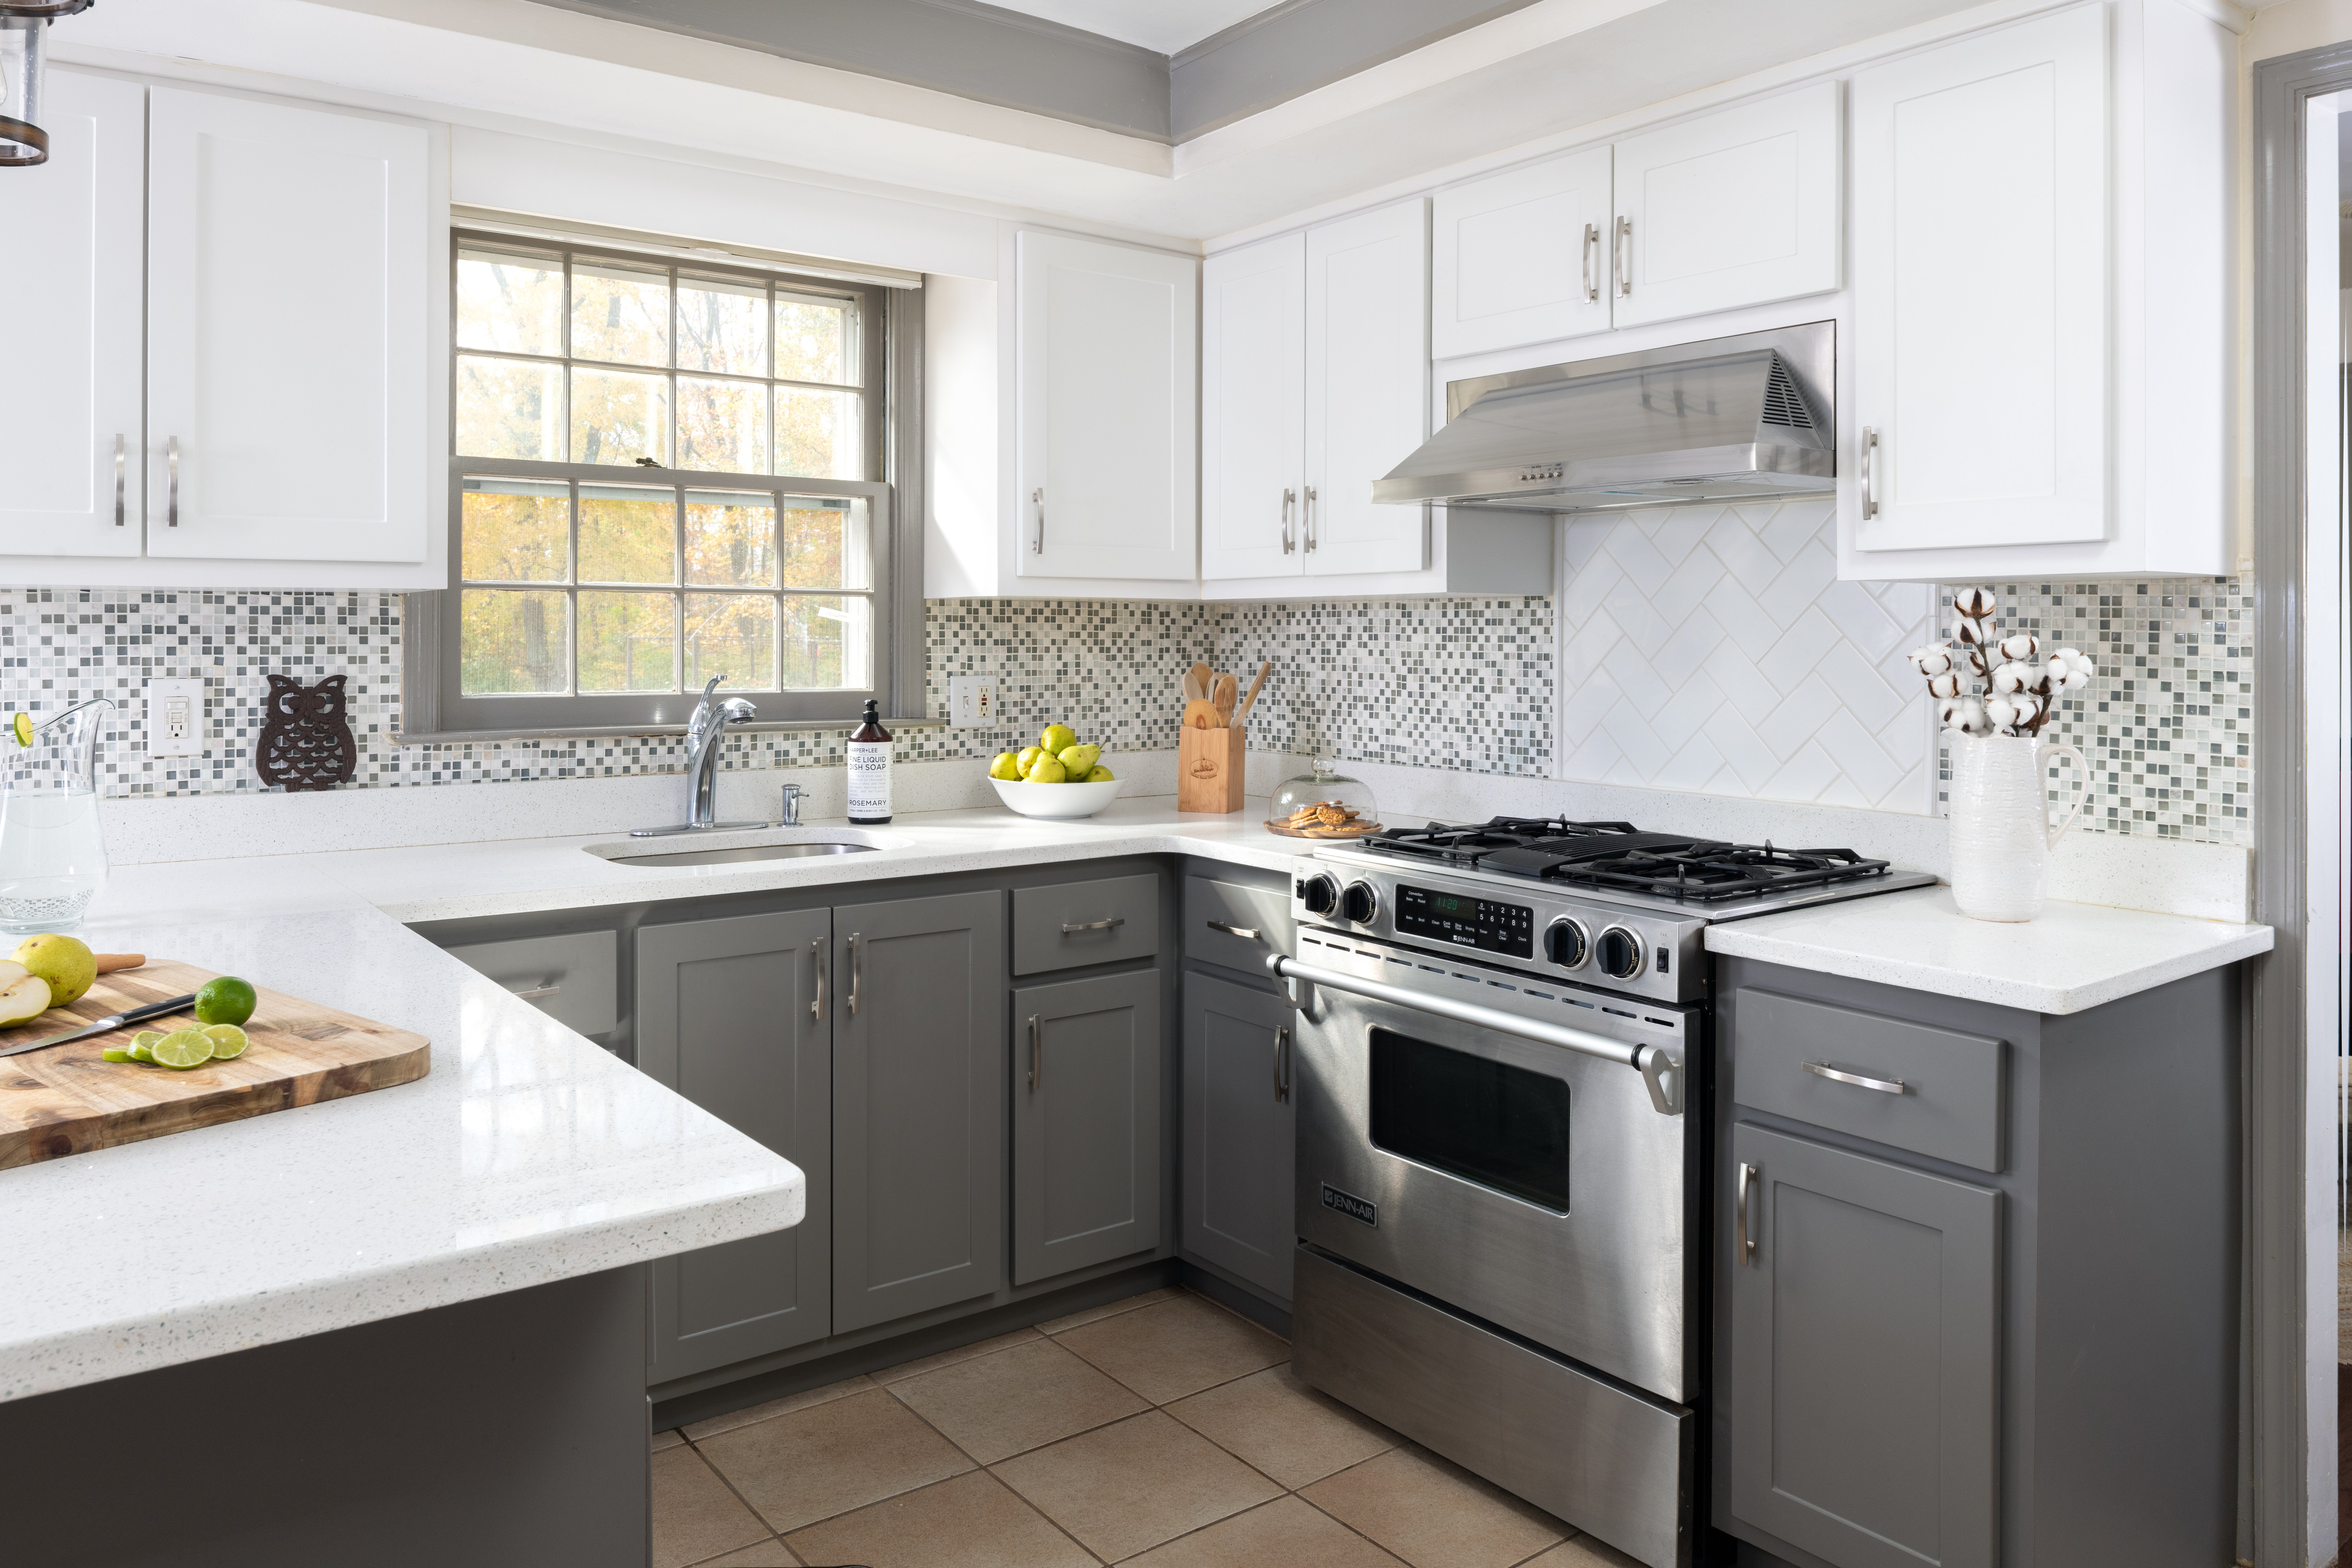 Kitchen Design on a Budget: Take the Phased Approach